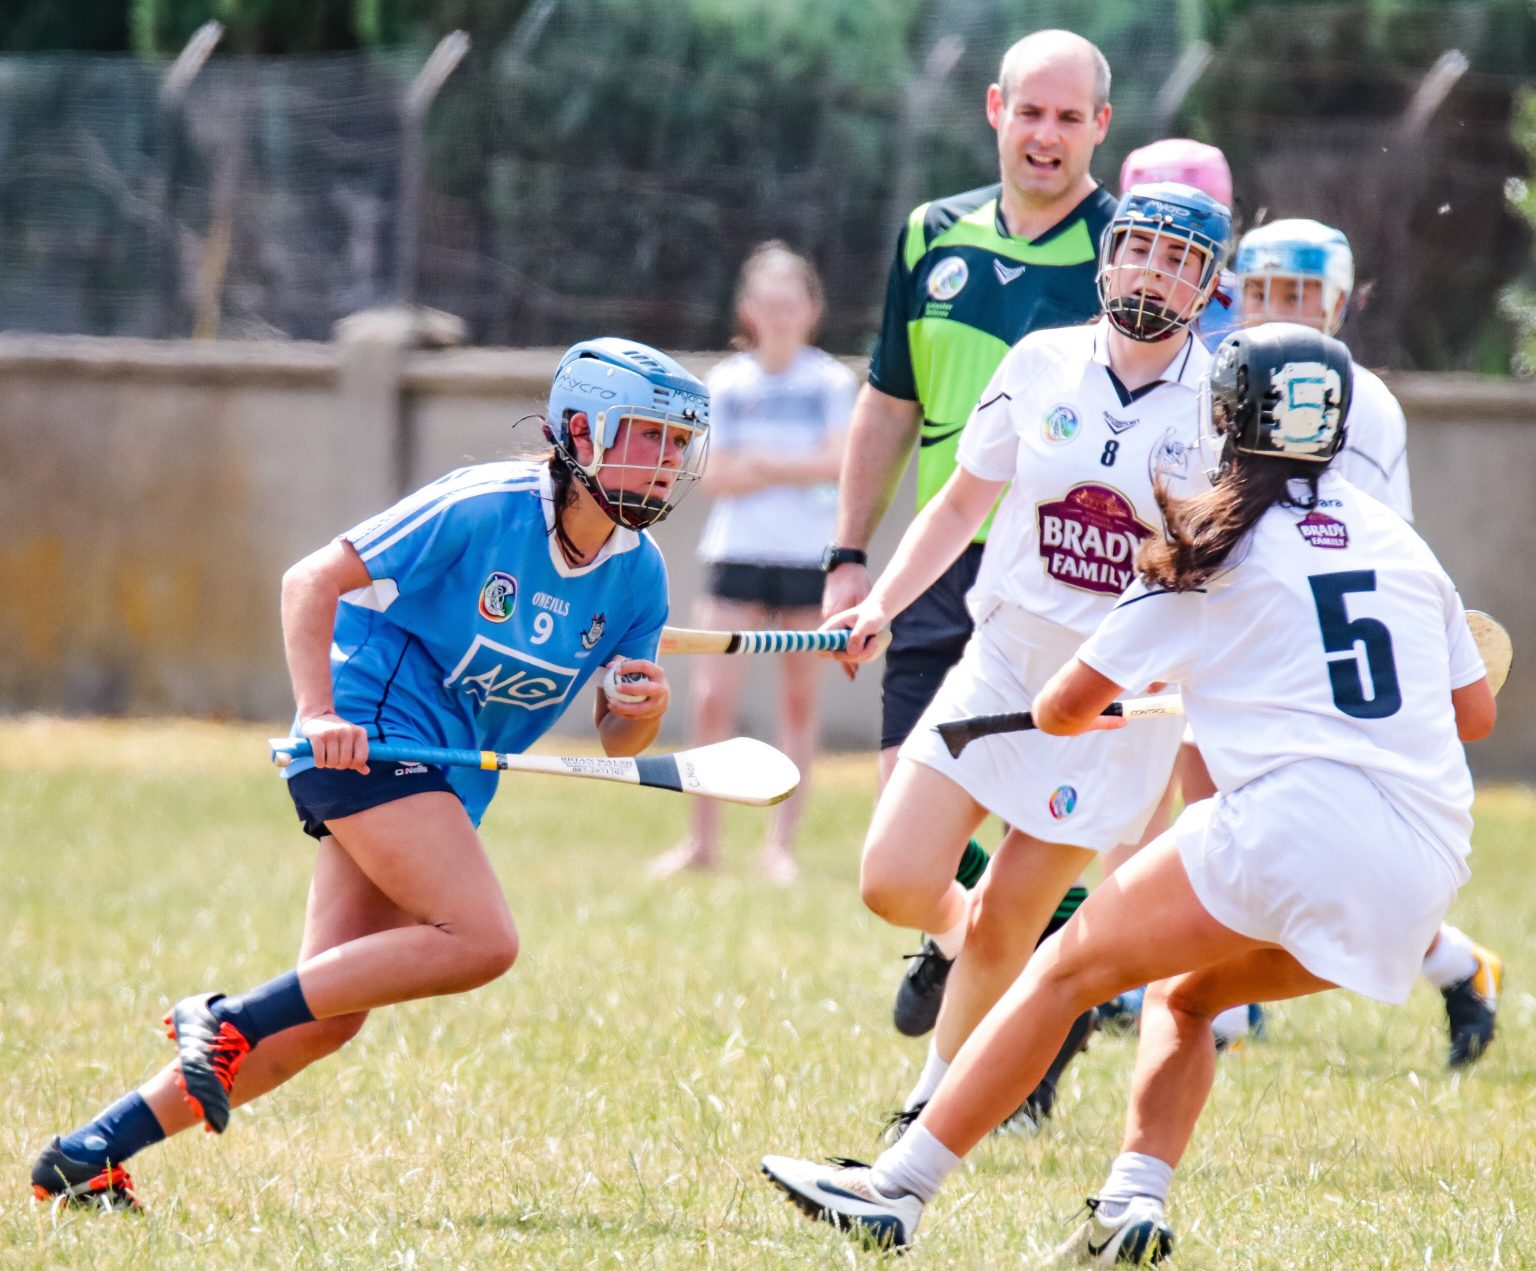 Dublin Minor Camogie Player in a sky blue jersey and sky blue and blue helmet in action against three Kildare players in white jerseys